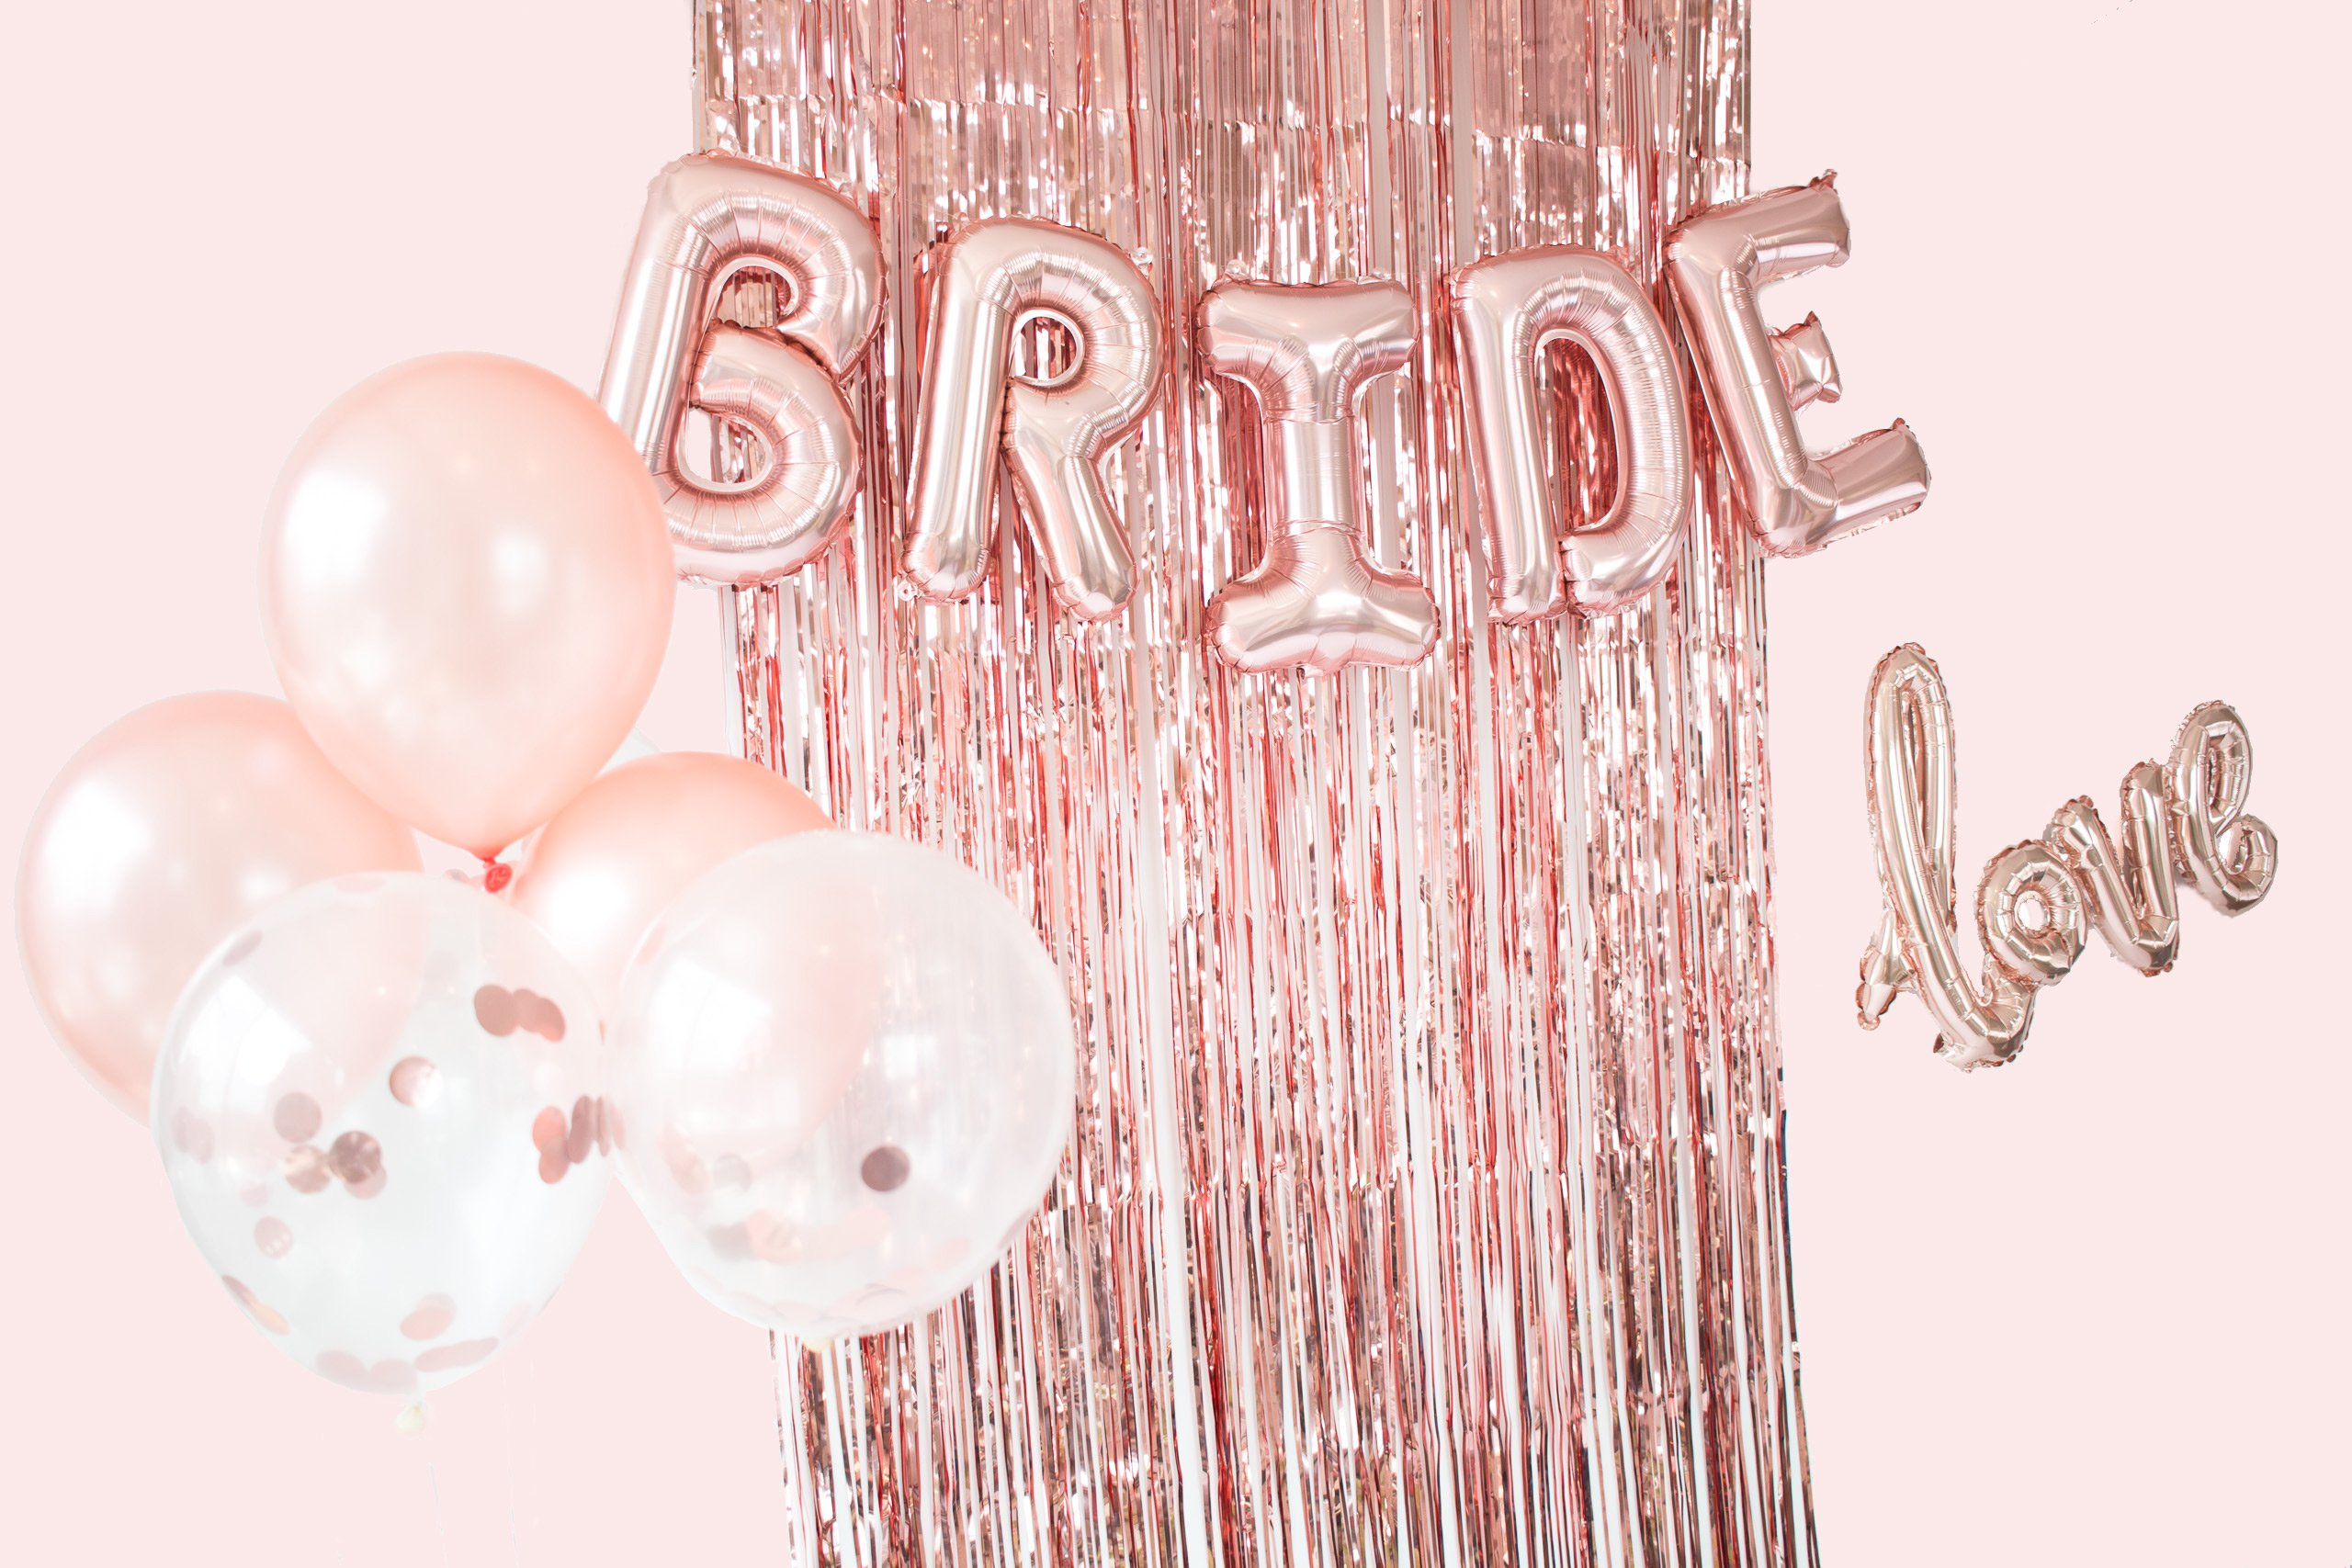 Bachelorette Party Decorations & Bridal Shower Supplies - Rose Gold Kit Includes: Bride & Love Foil Balloons, Rose Gold Fringe Curtain, Confetti & Rose Gold Latex Balloons by Mandie's Party Shop